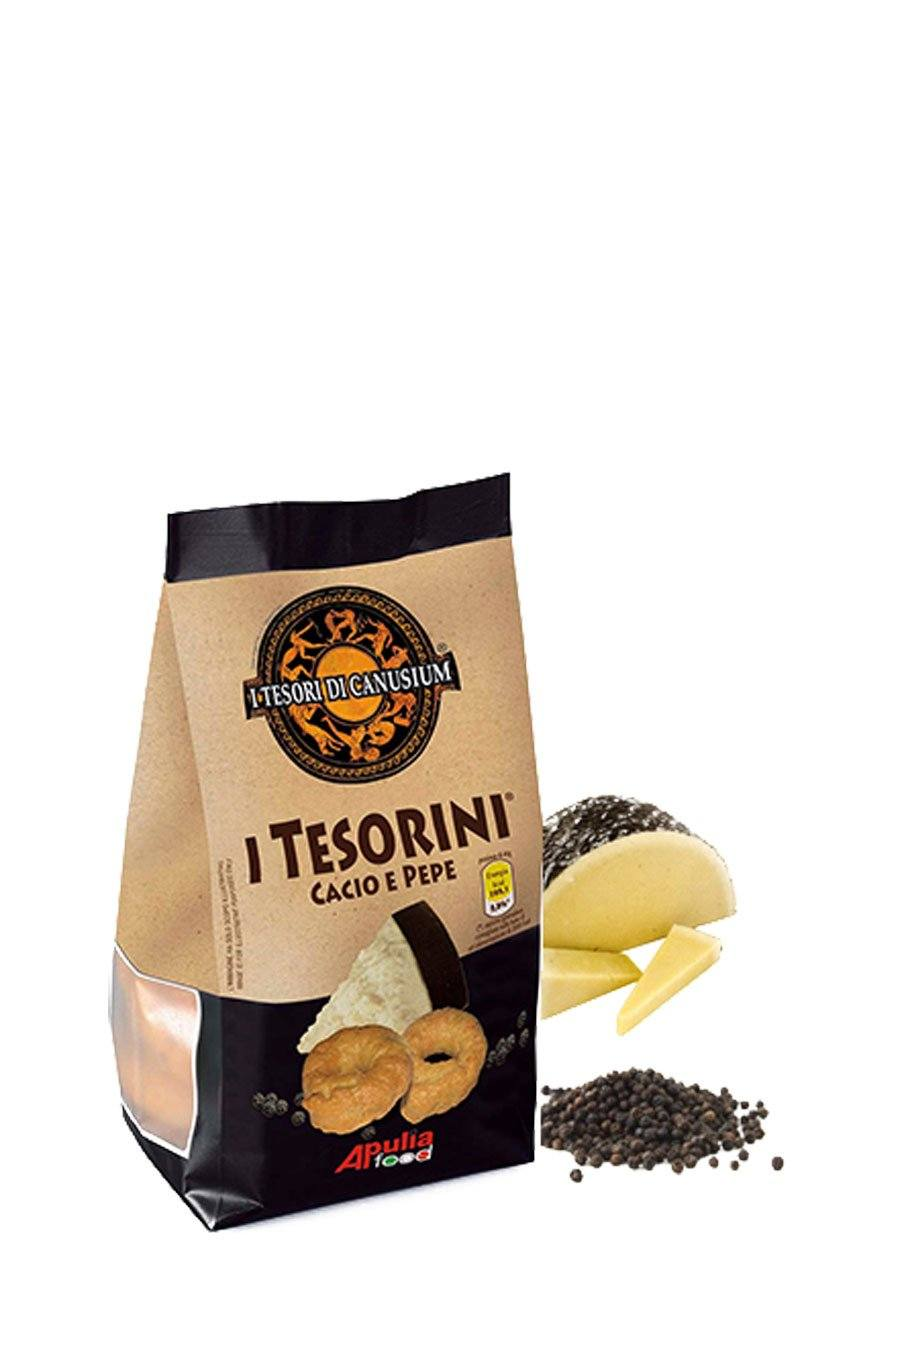 Italian Taralli Cheese & Pepper 225g - Agrumia